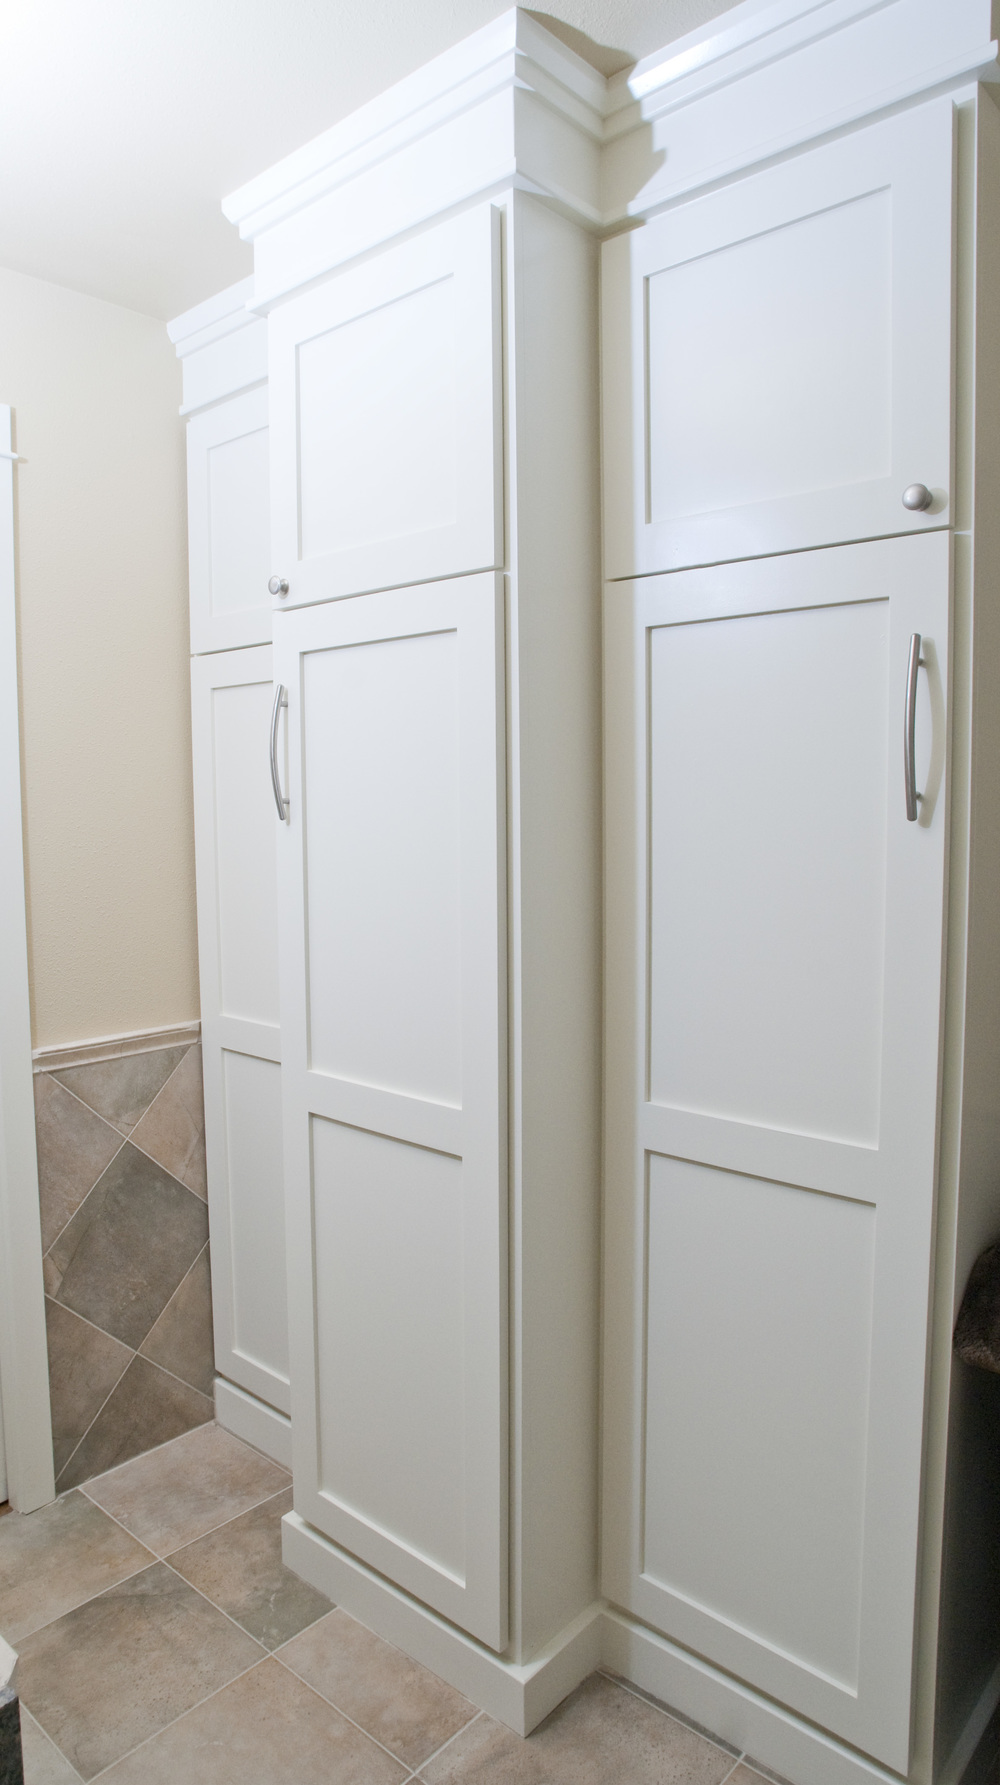 After Solution: Remove one tub and replace with amazing storage